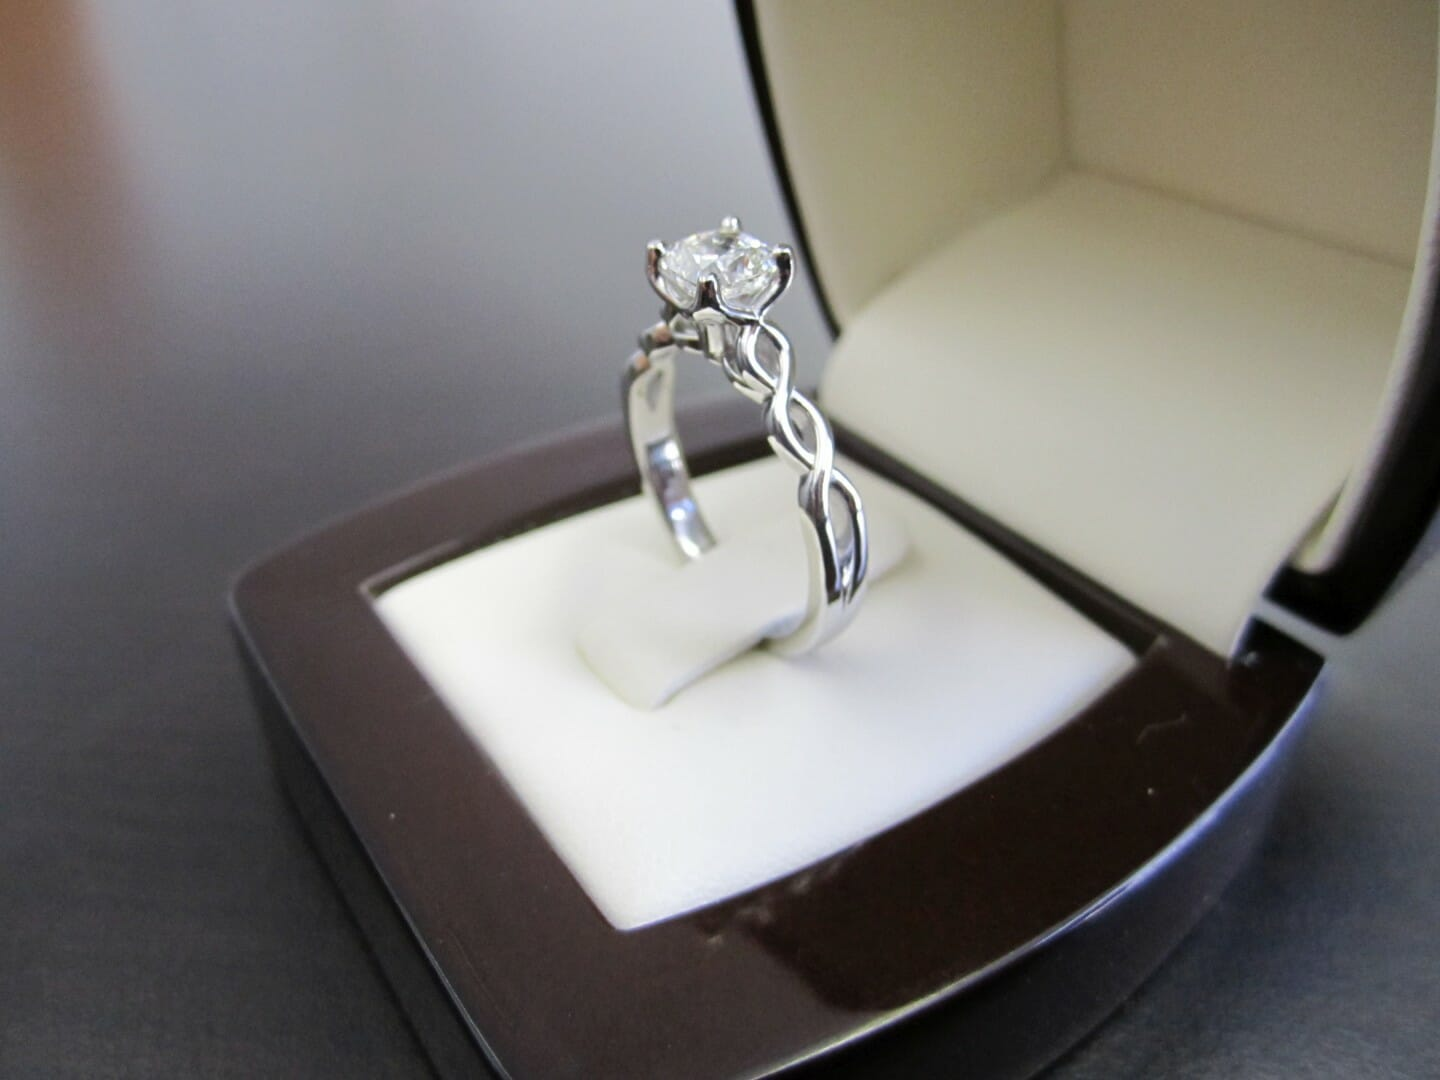 Picture of 1ct Cushion Brilliant Diamond in a Platinum Twist Design Engagement Ring